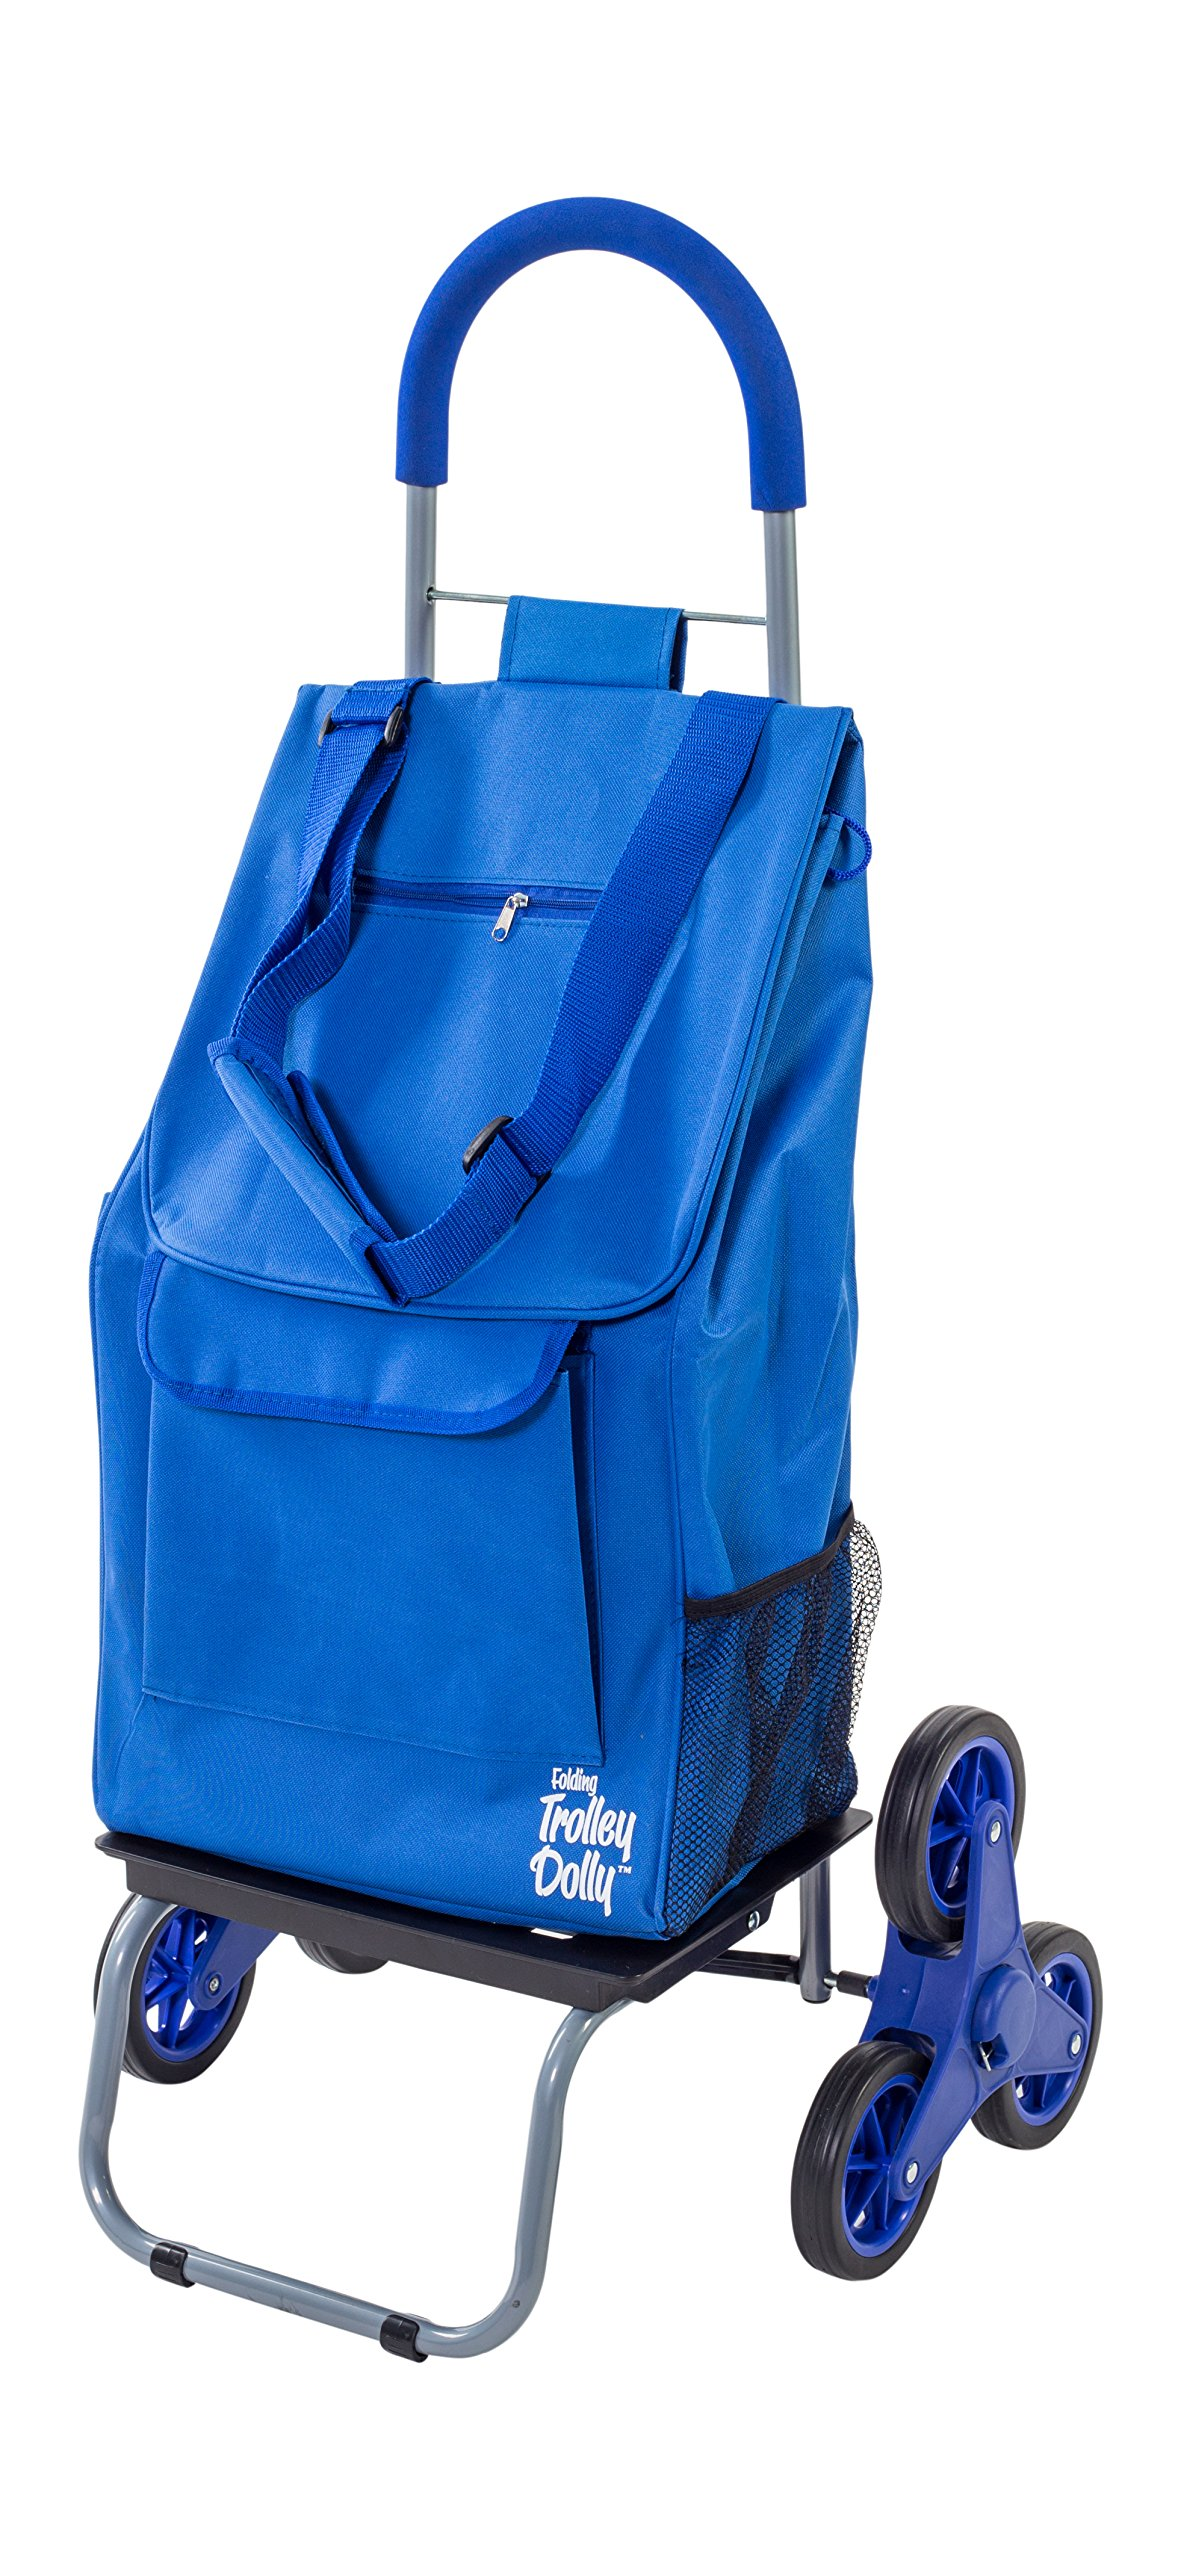 dbest products Stair Climber Trolley Dolly, Blue Shopping Grocery Foldable Cart Condo Apartment by dbest products (Image #1)